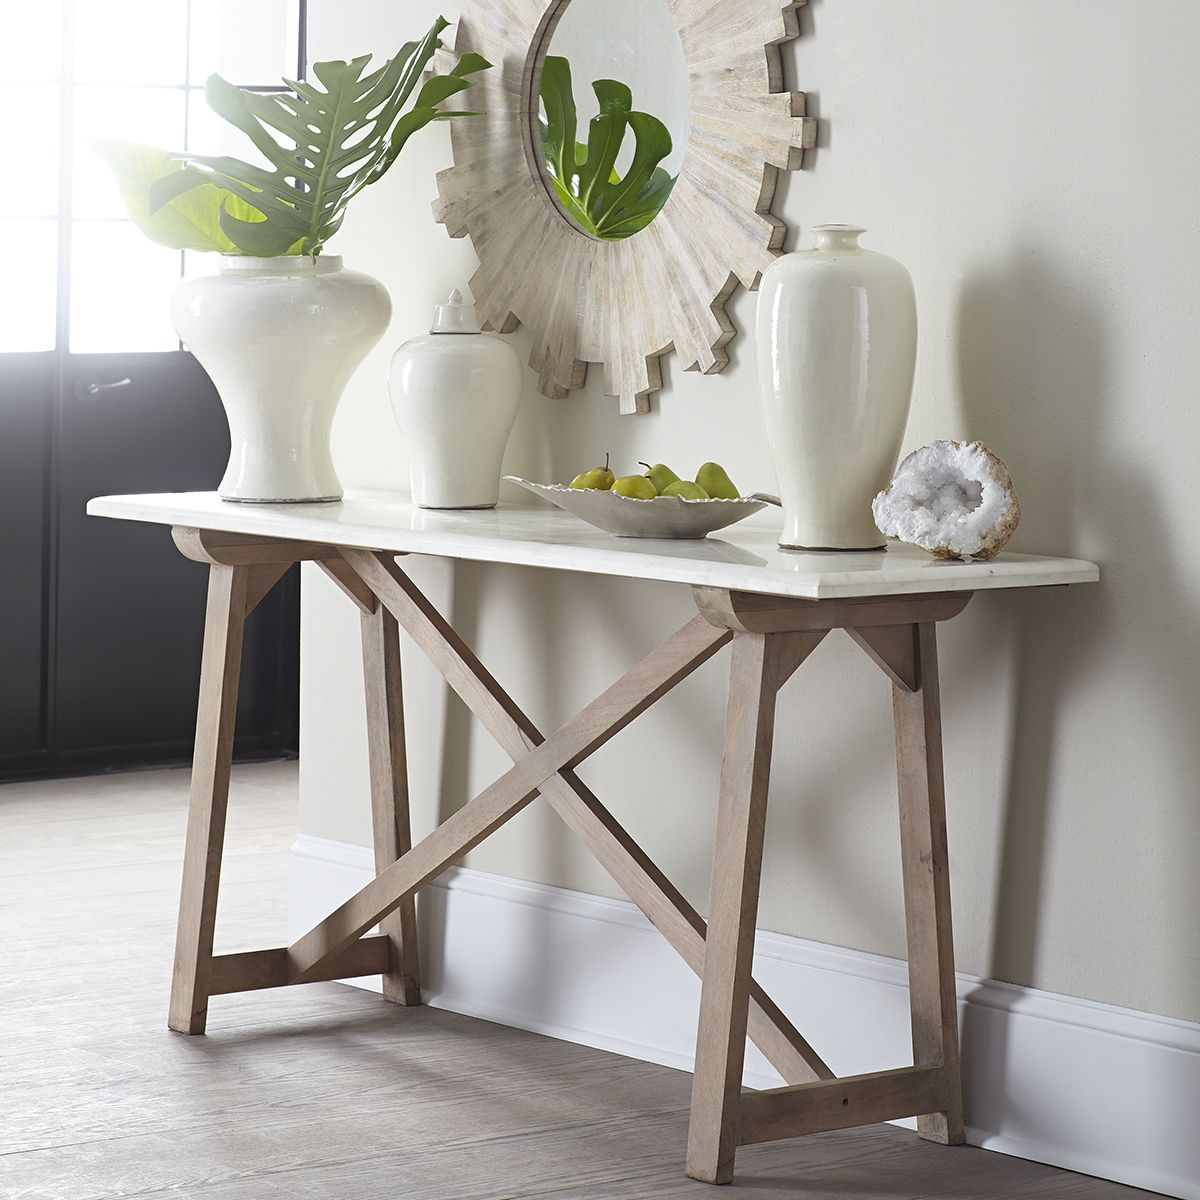 Marble Top Console Table Dining Room Console Table Marble Top Console Table Dining Room Console